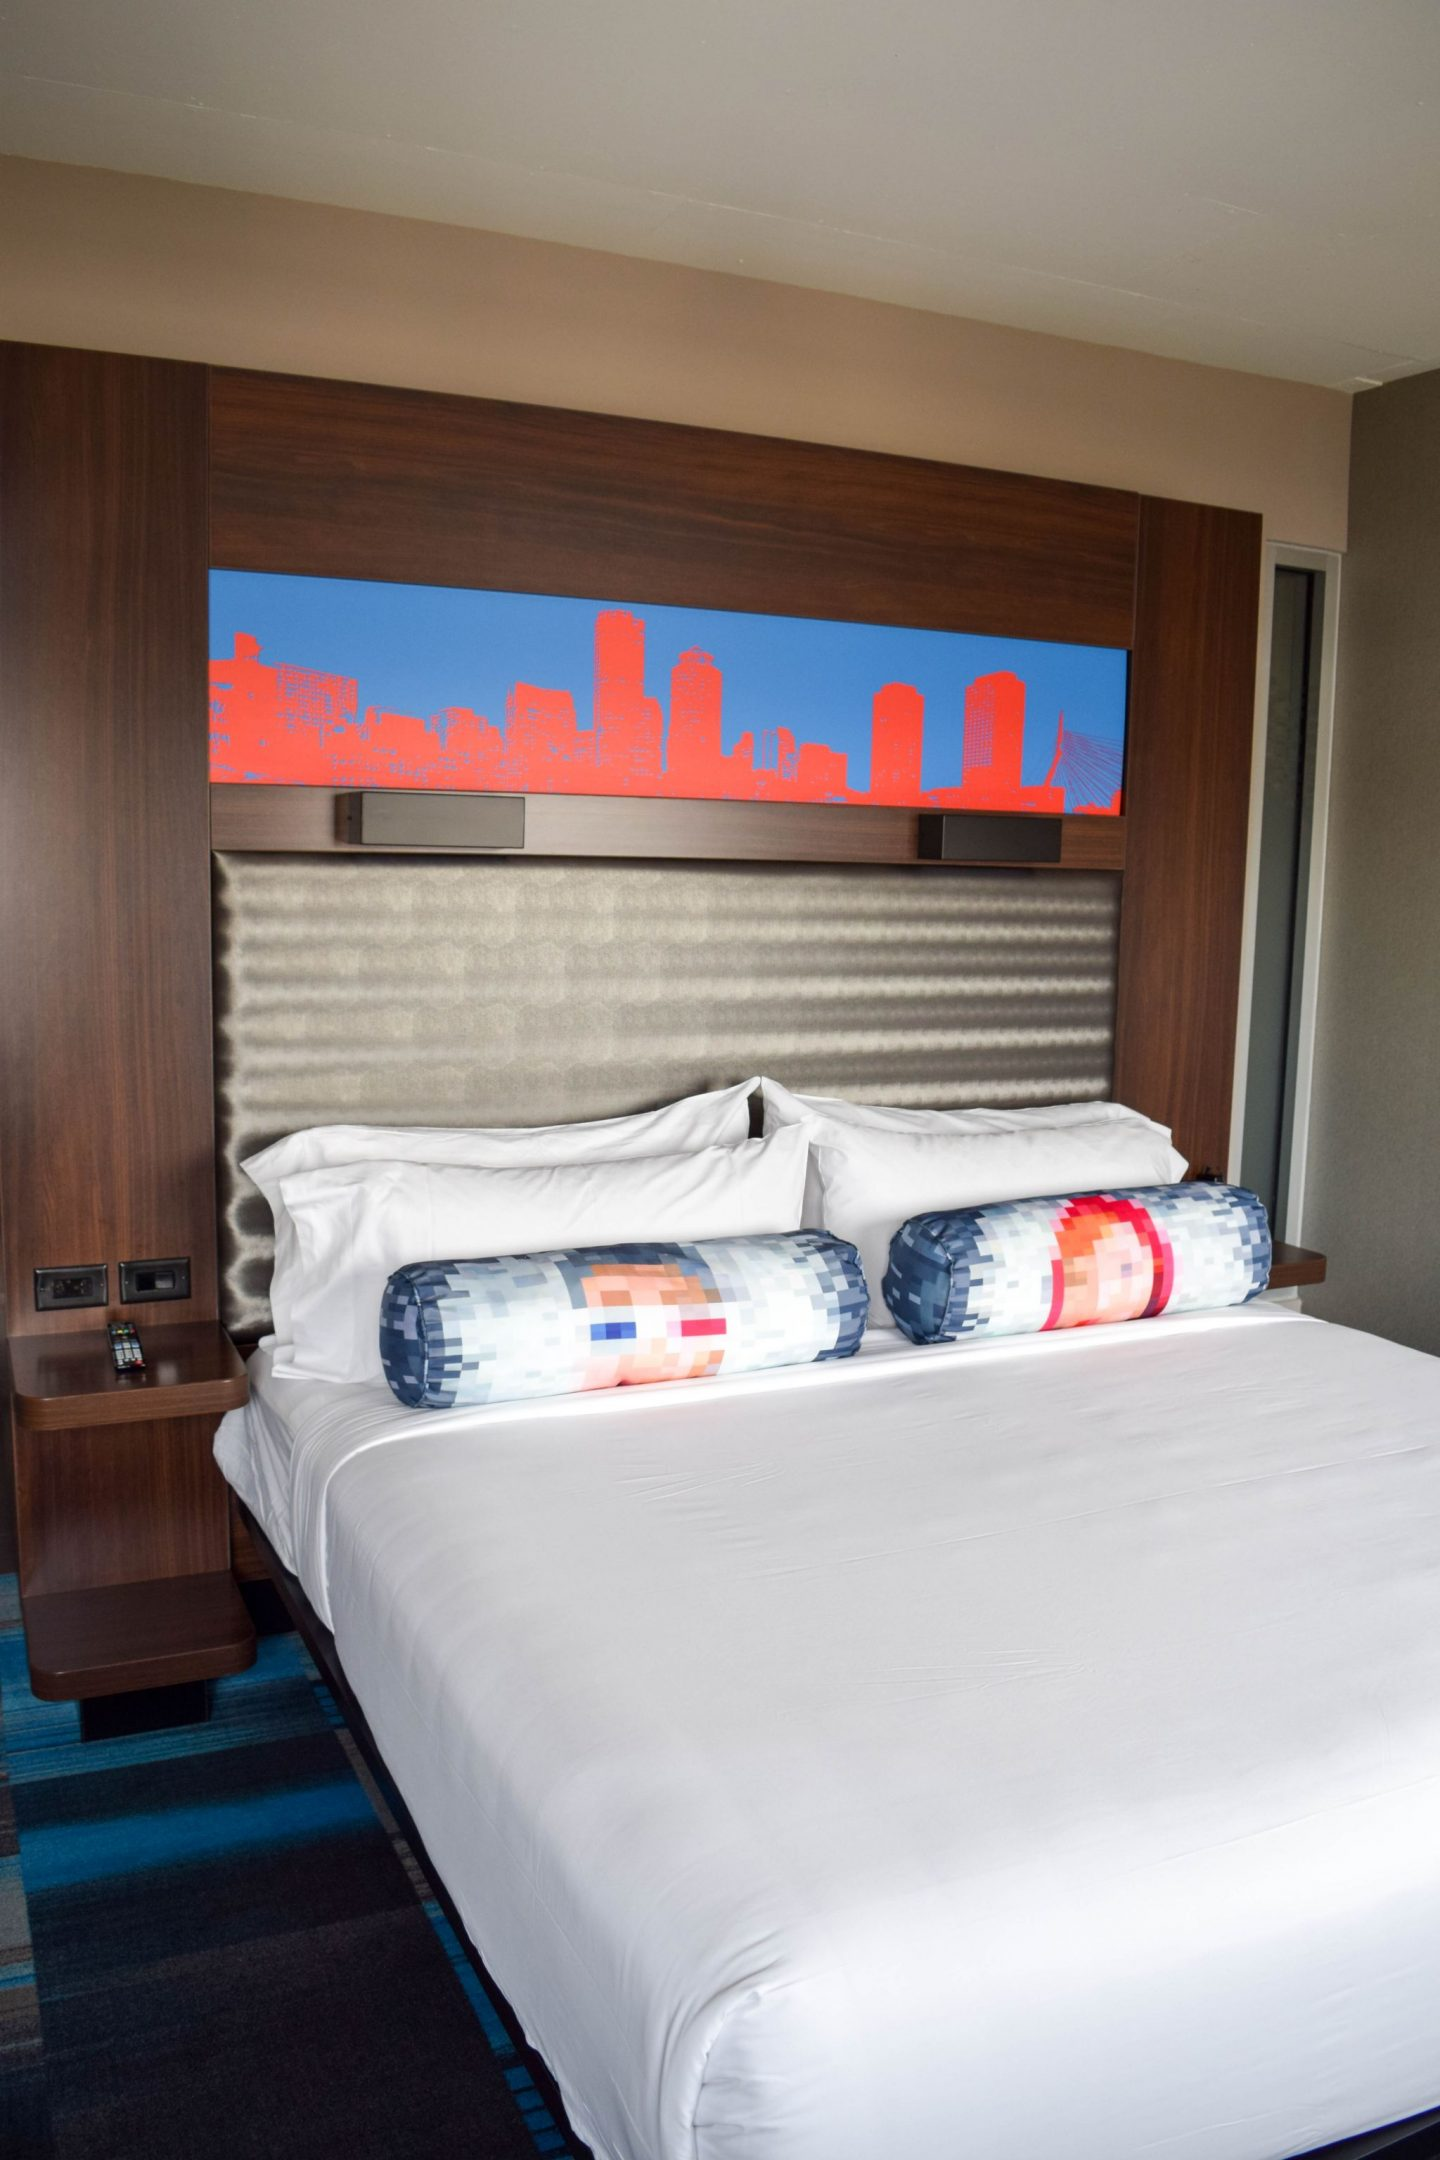 Boston Buzz: My Stay at Aloft Boston Seaport